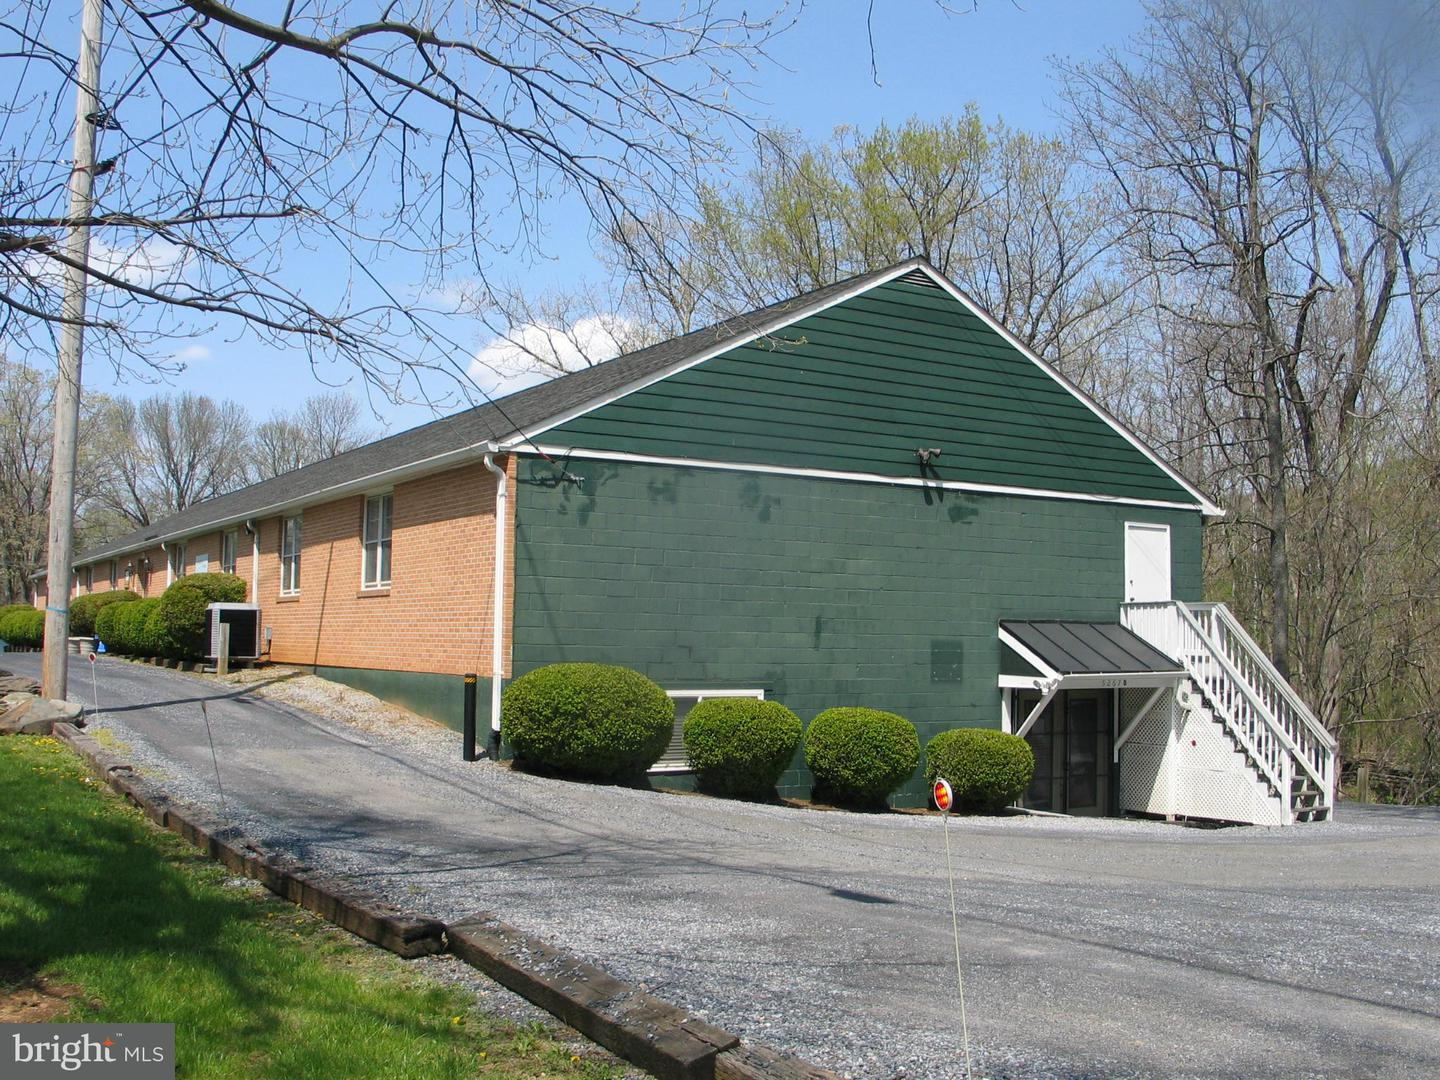 Other Residential for Rent at 5267 John Marshall Hwy #d Linden, Virginia 22642 United States